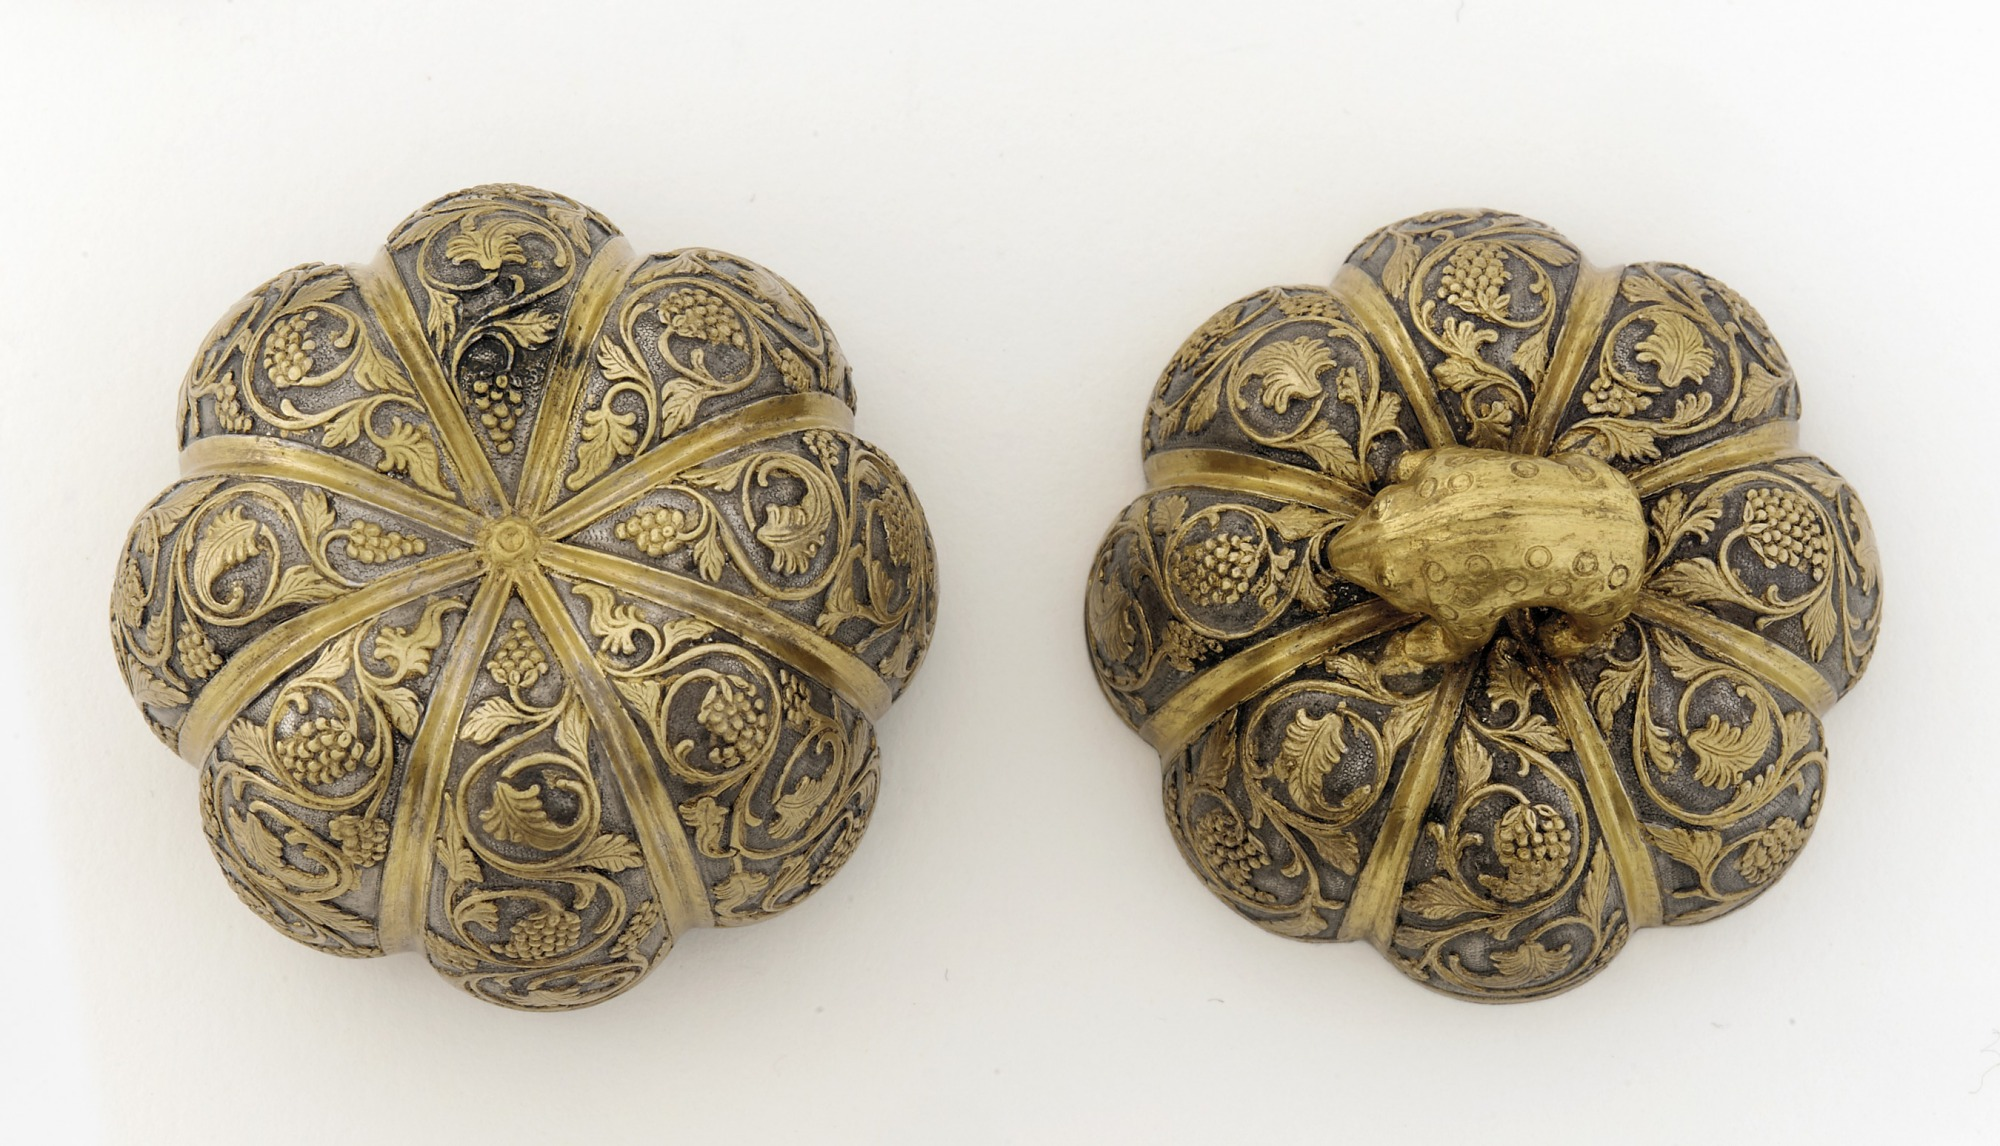 Lidded box in the form of a melon with grapevines and knob in the shape of a rodent